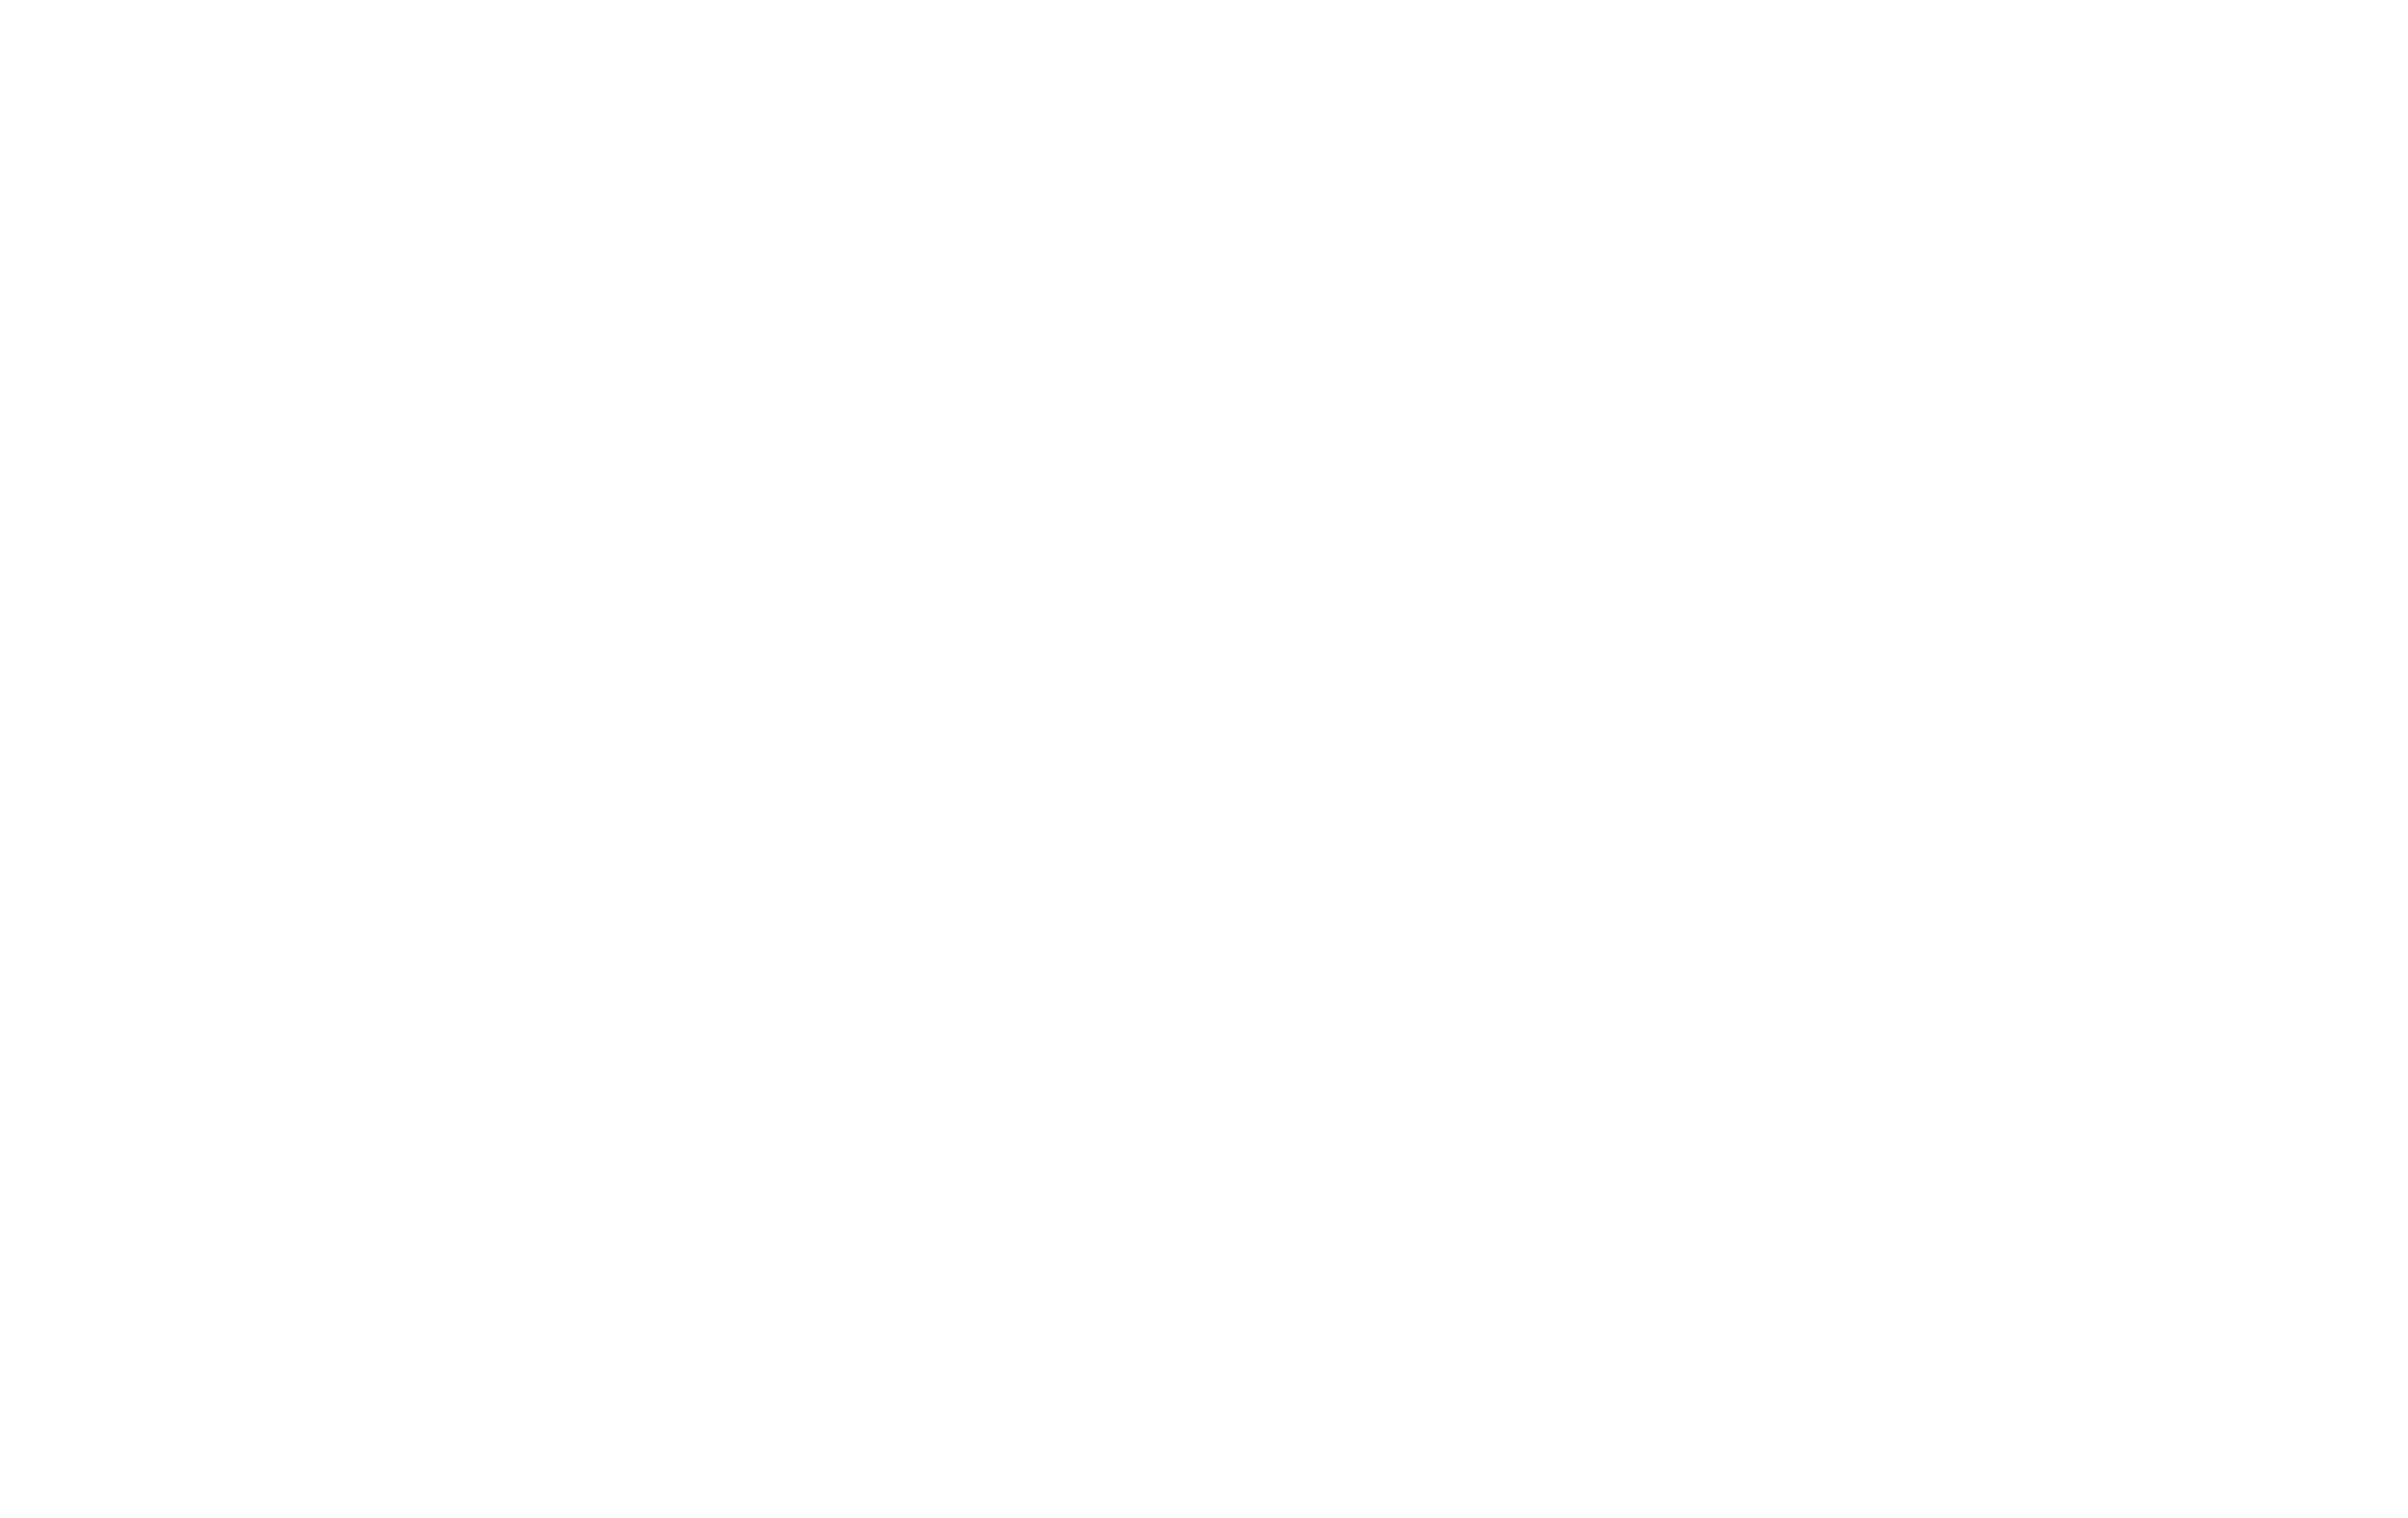 Logo for The Jeff McManus Group: Cultivating Great Leaders